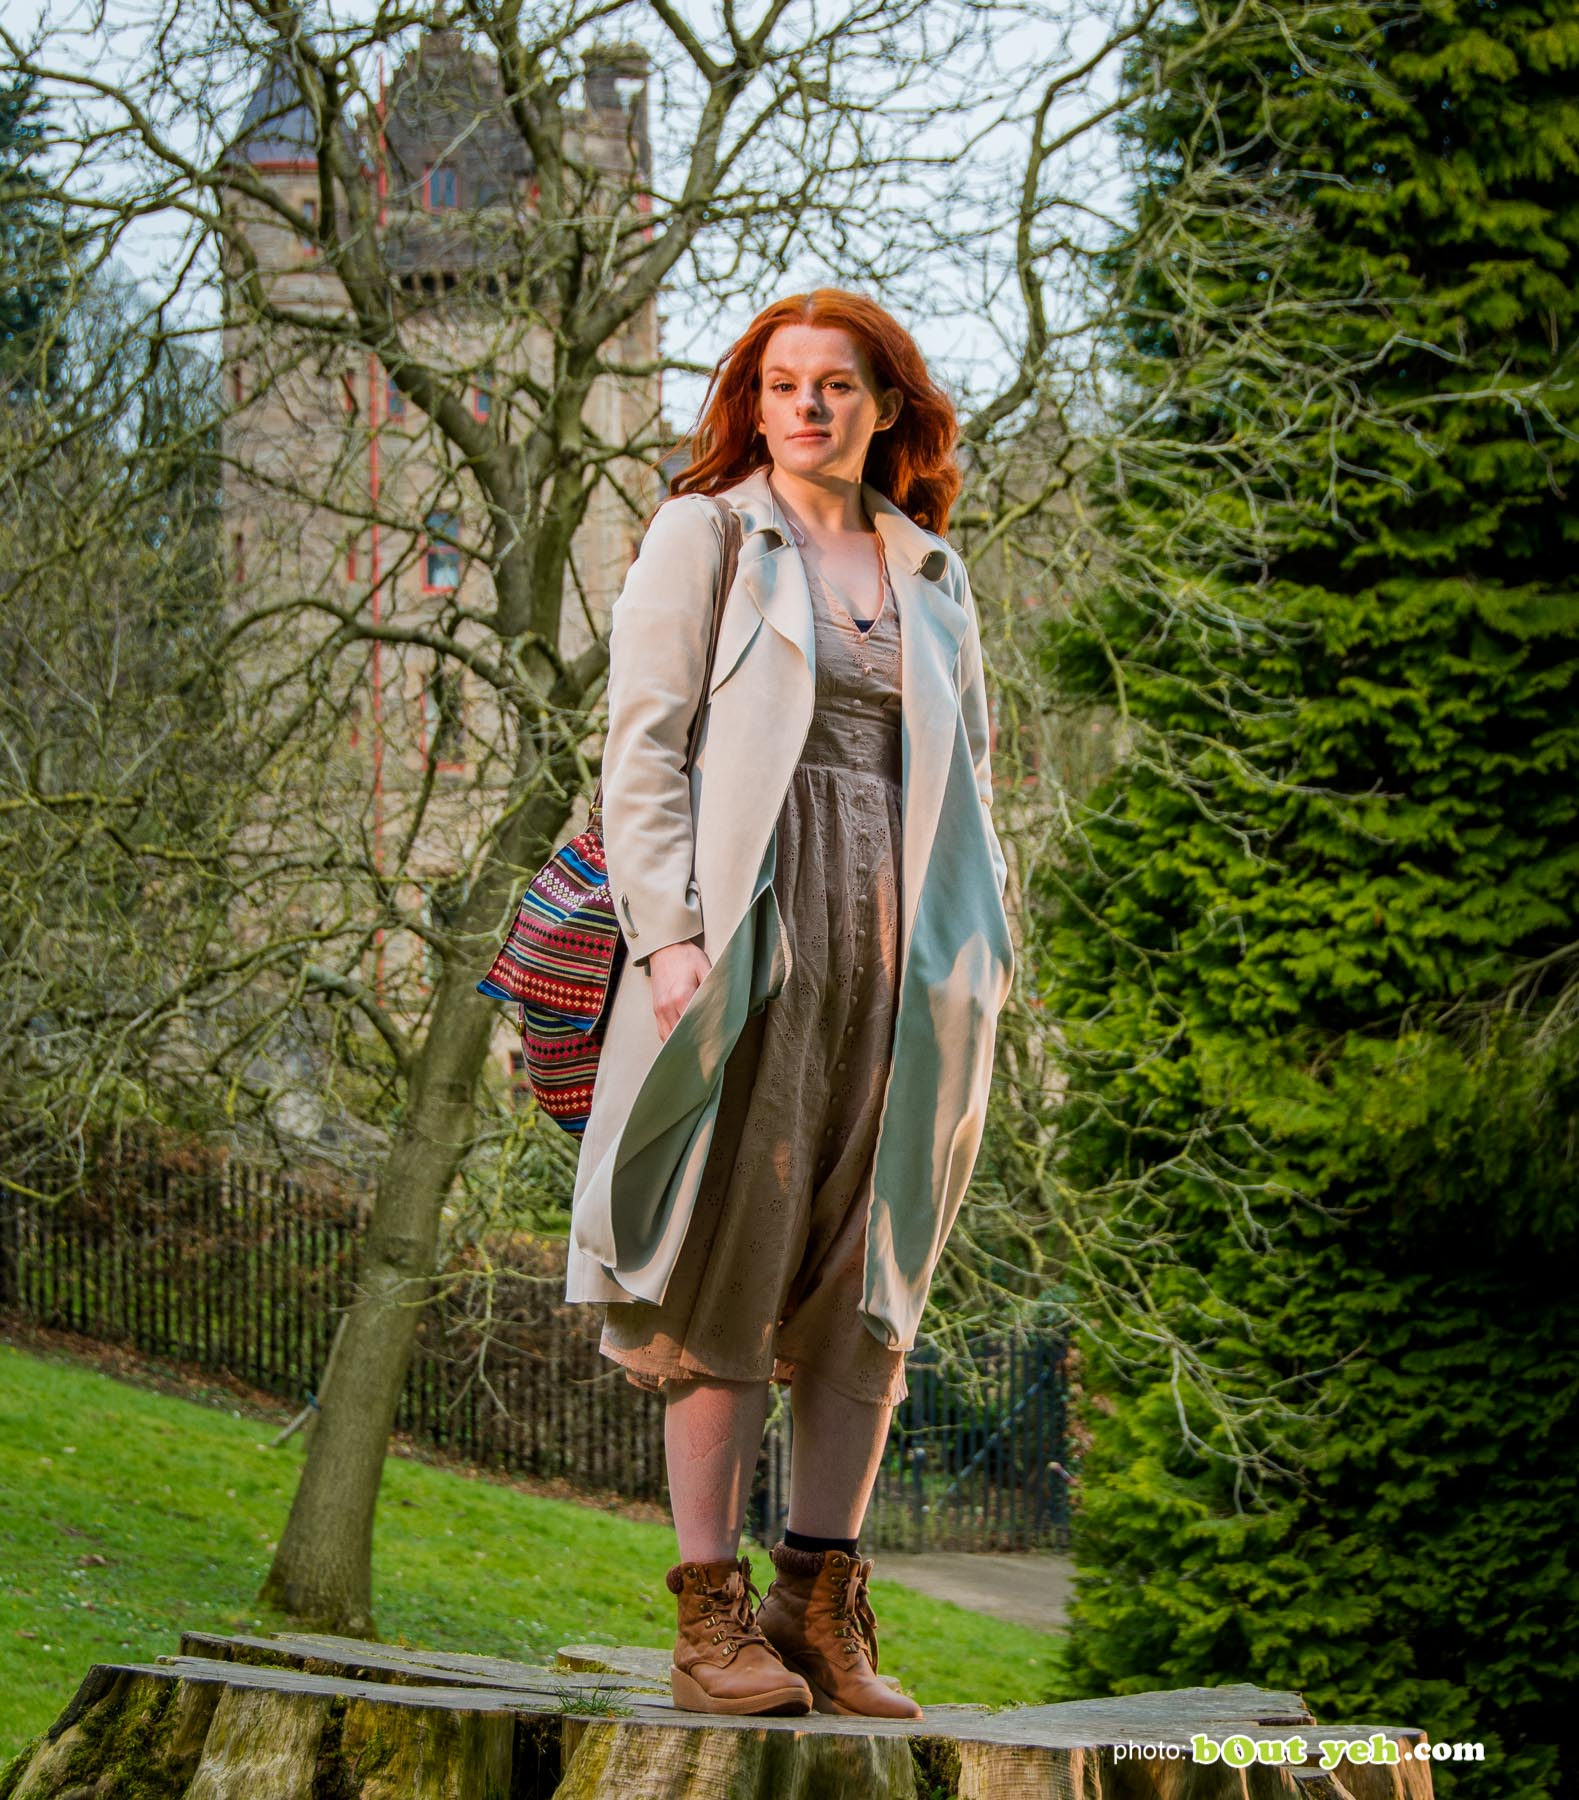 Author Lauren Robinson photographed in the grounds of Belfast Castle by Bout Yeh photographers Belfast - photo 0832